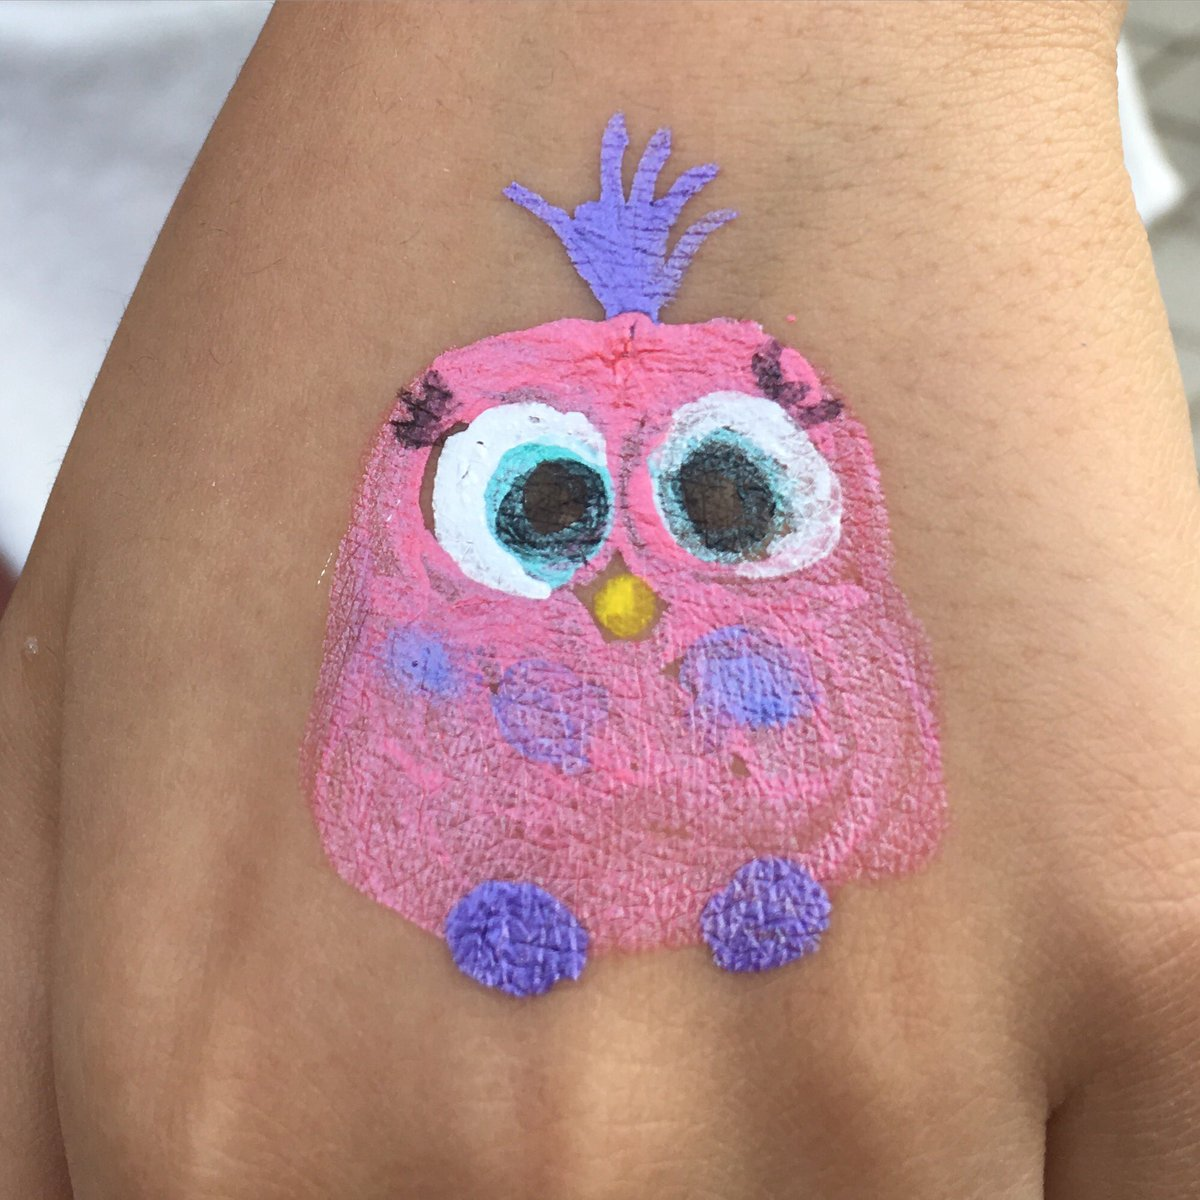 Schools in Korea already hand-painting on fair day before the movie is out! thumbs up! (feathers) @JohnCohen1 https://t.co/TnblUYD6pc